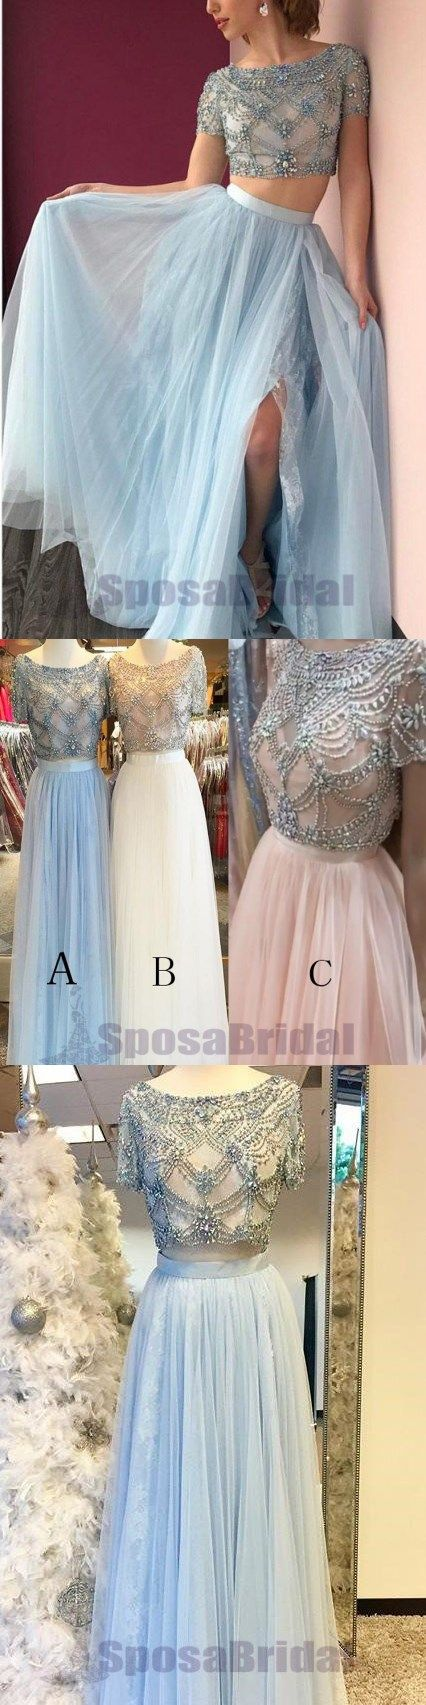 Two Pieces Short Sleeves Beaded Sparkly Affordable Prom Dresses, Fashion Elegant Prom Gowns, PD0583